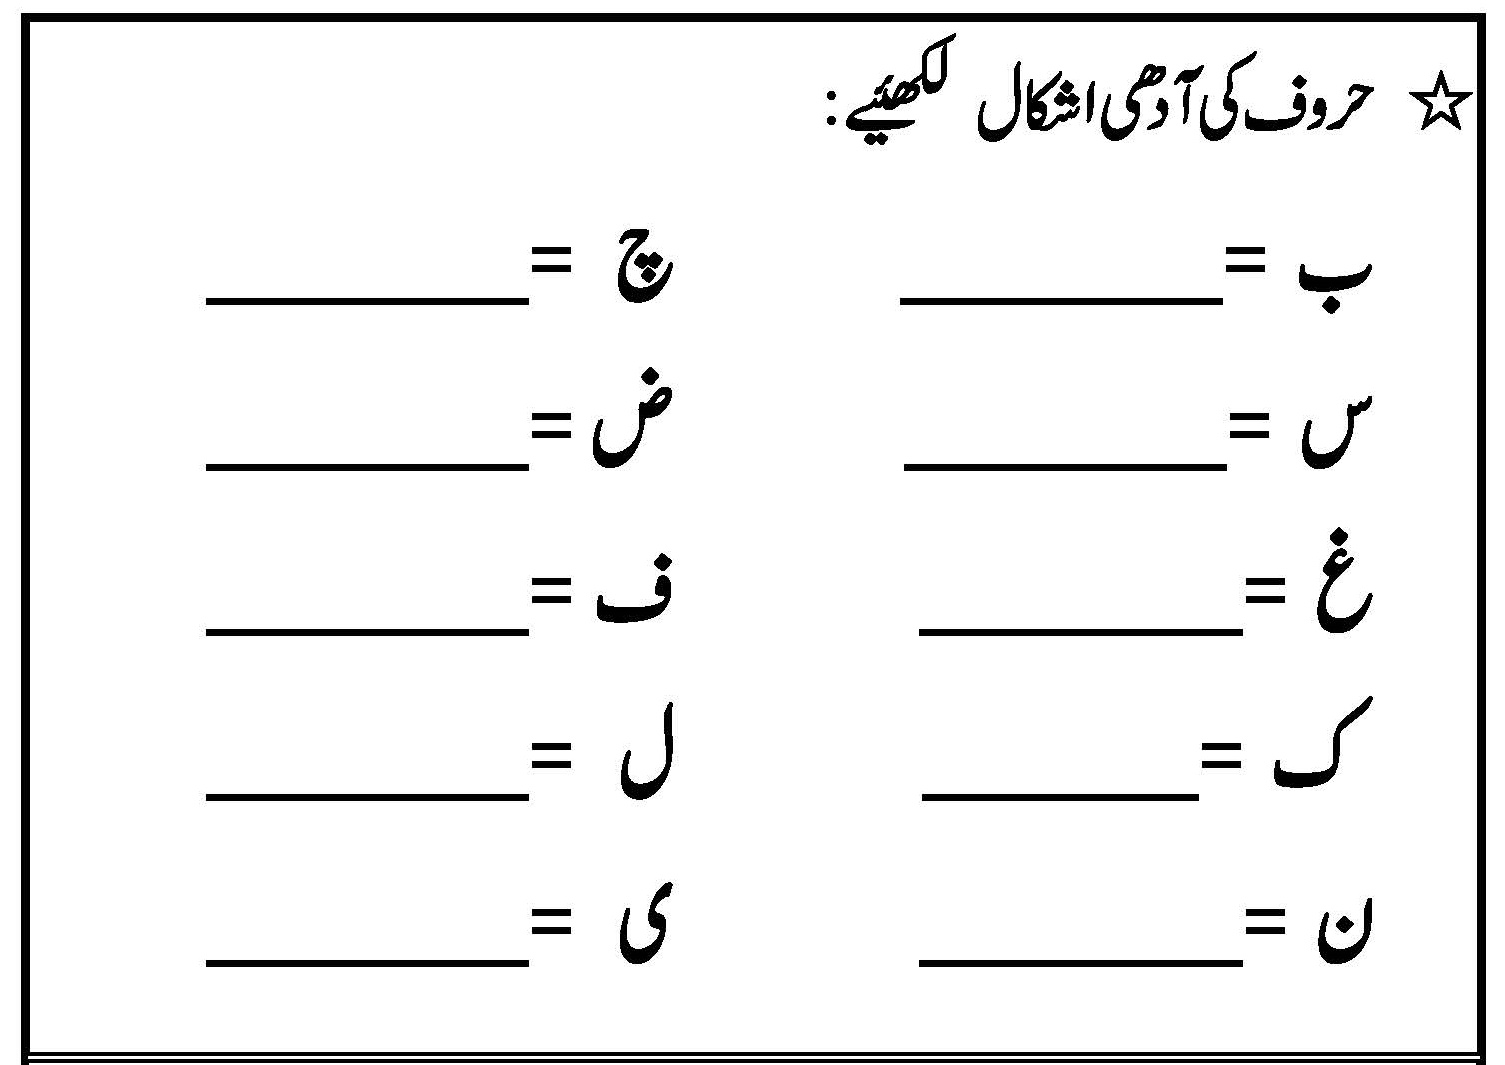 Worksheets Of Urdu For Preschool